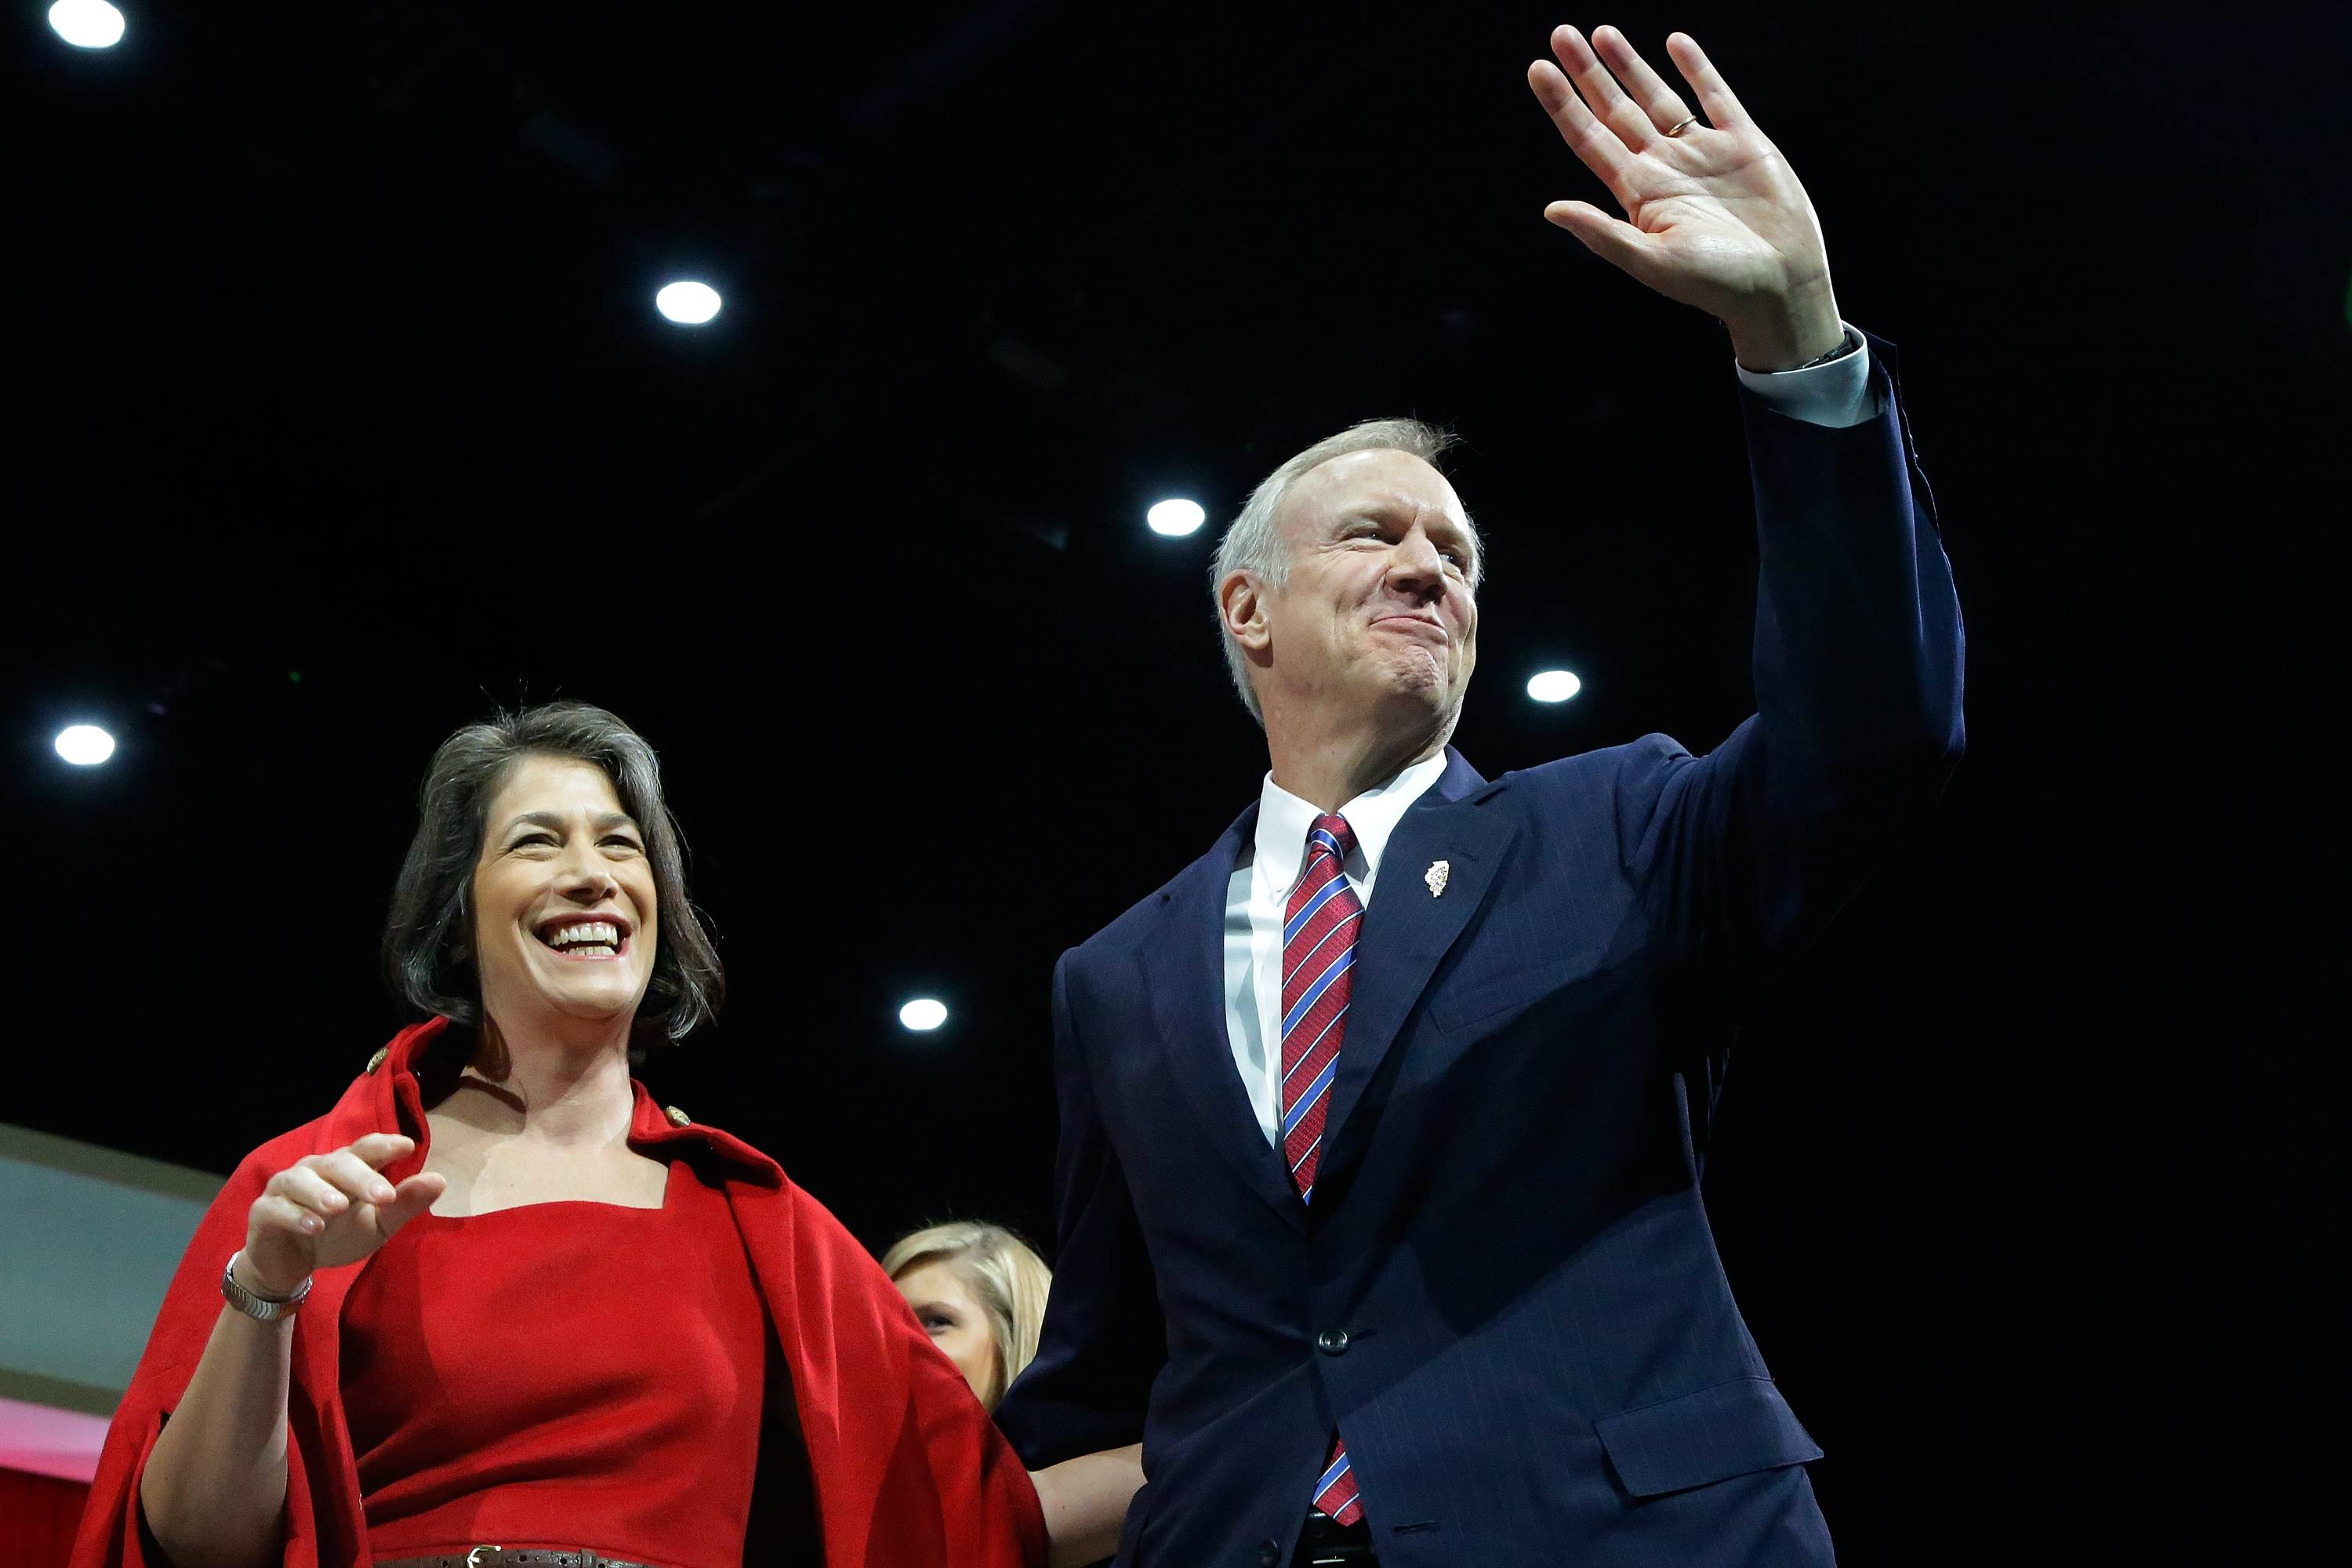 Bruce Rauner and his wife, Diana, wave to supporters after taking the oath of office Monday in Springfield.